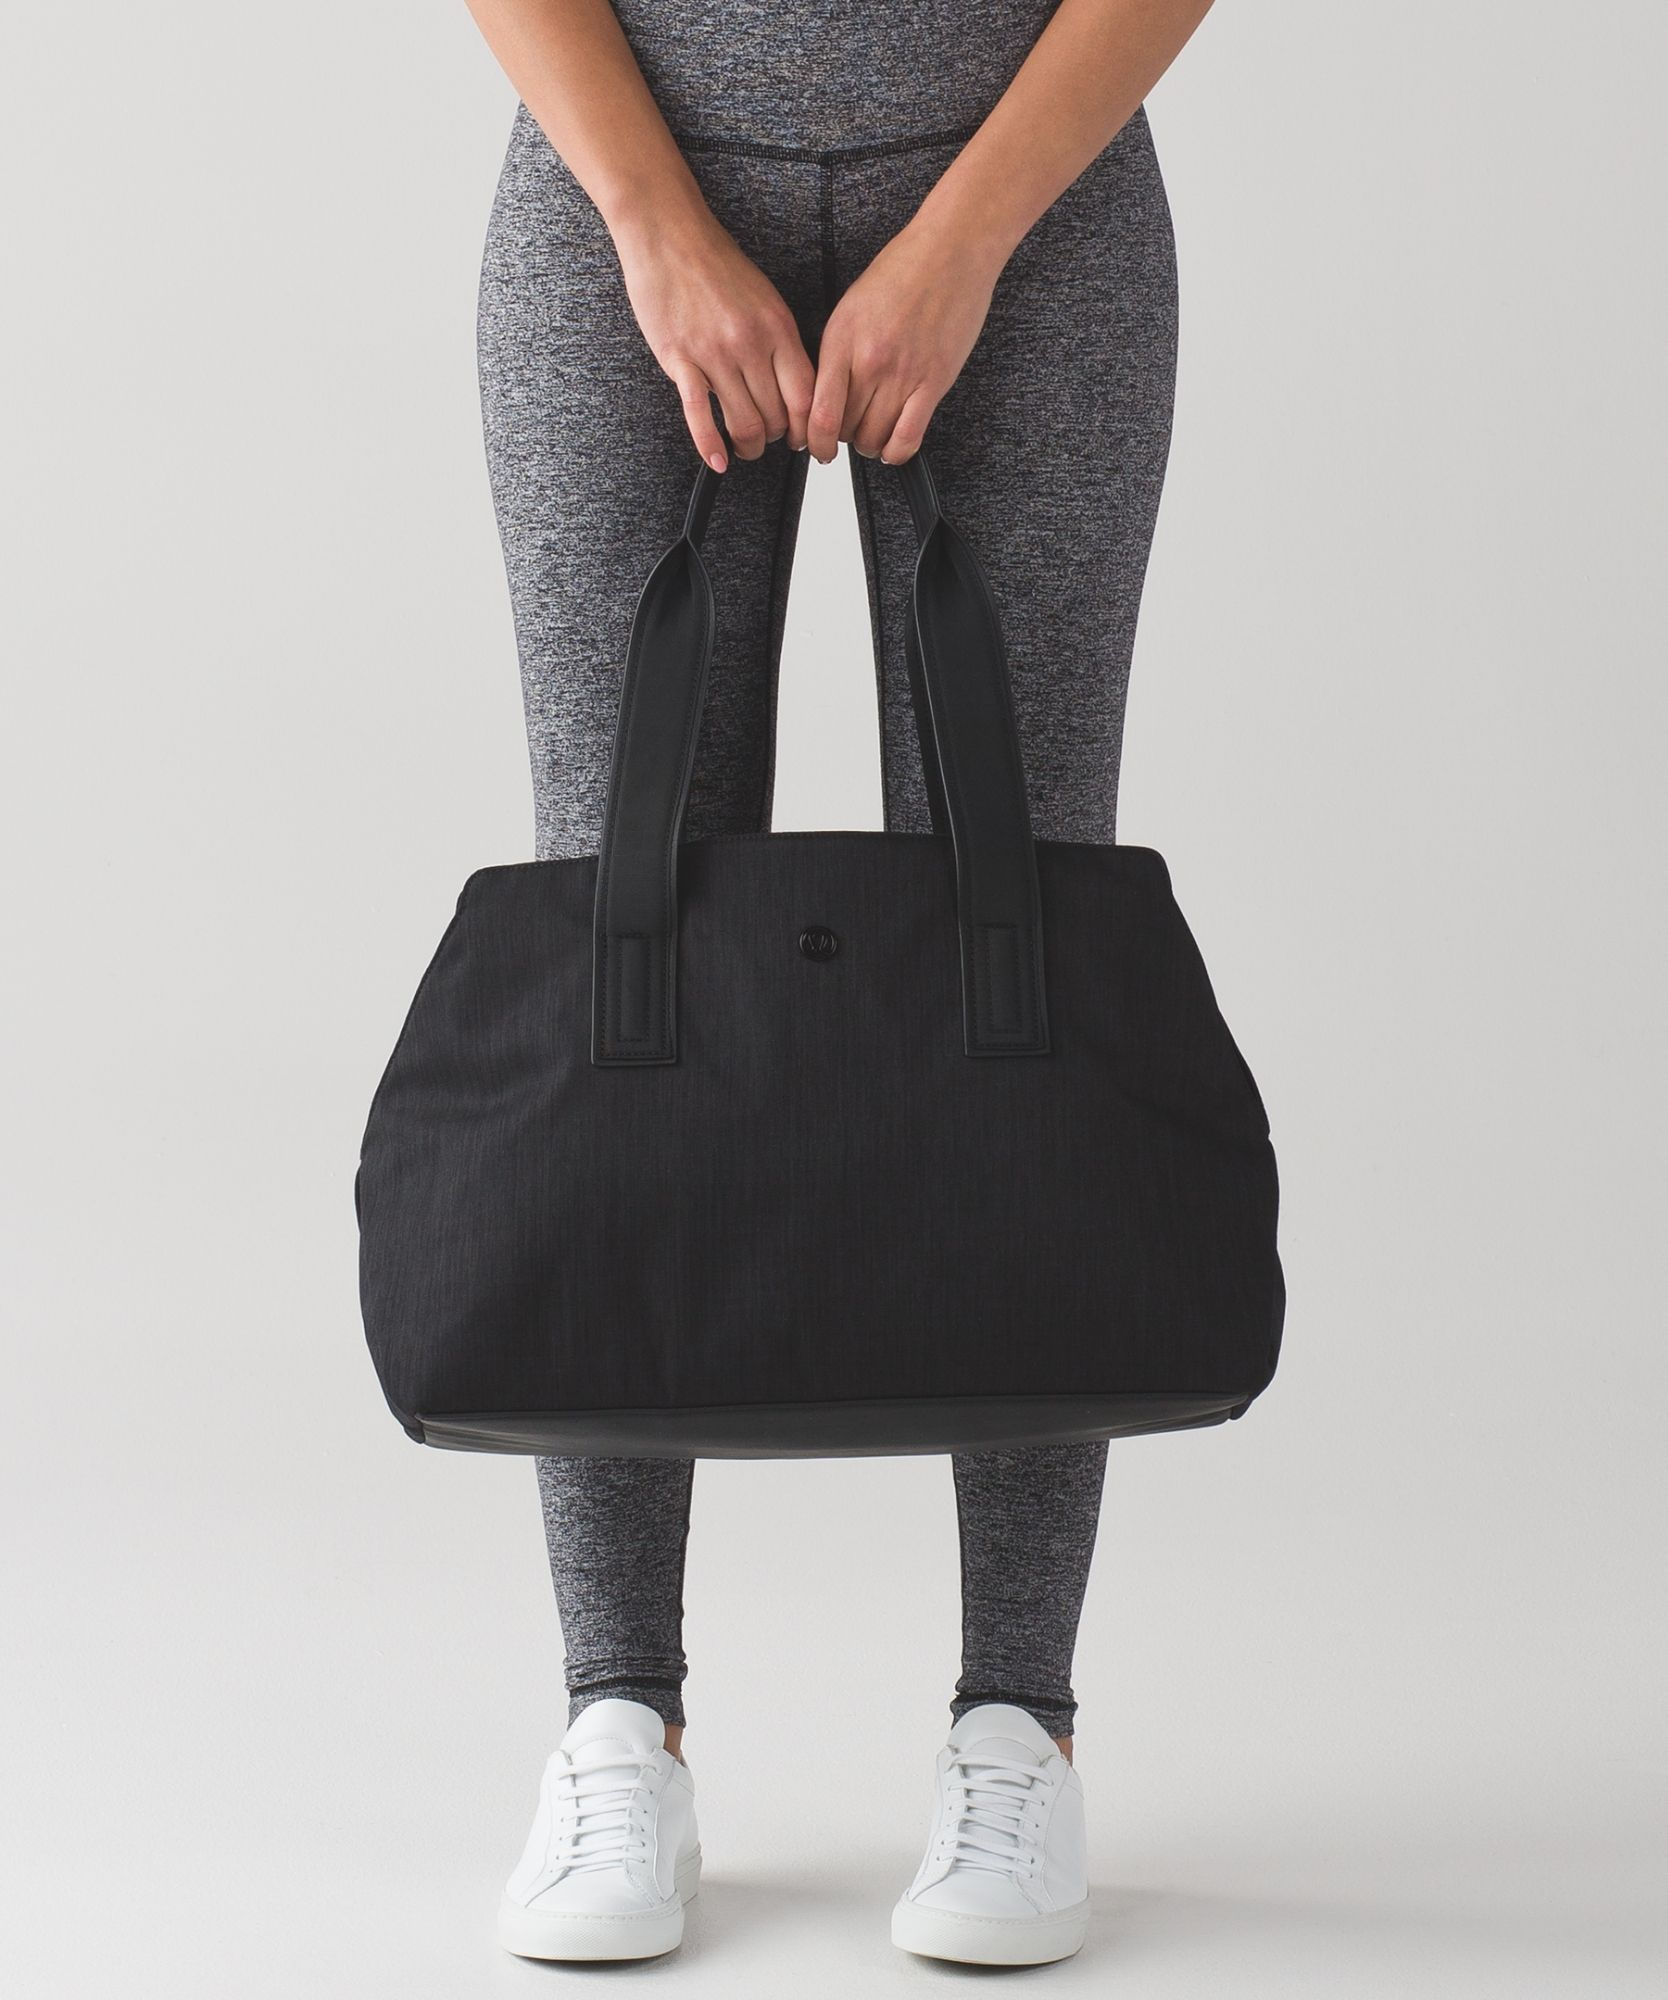 871d09a3f1 Go Getter Bag (Heatproof) from  lululemon which doesn t scream